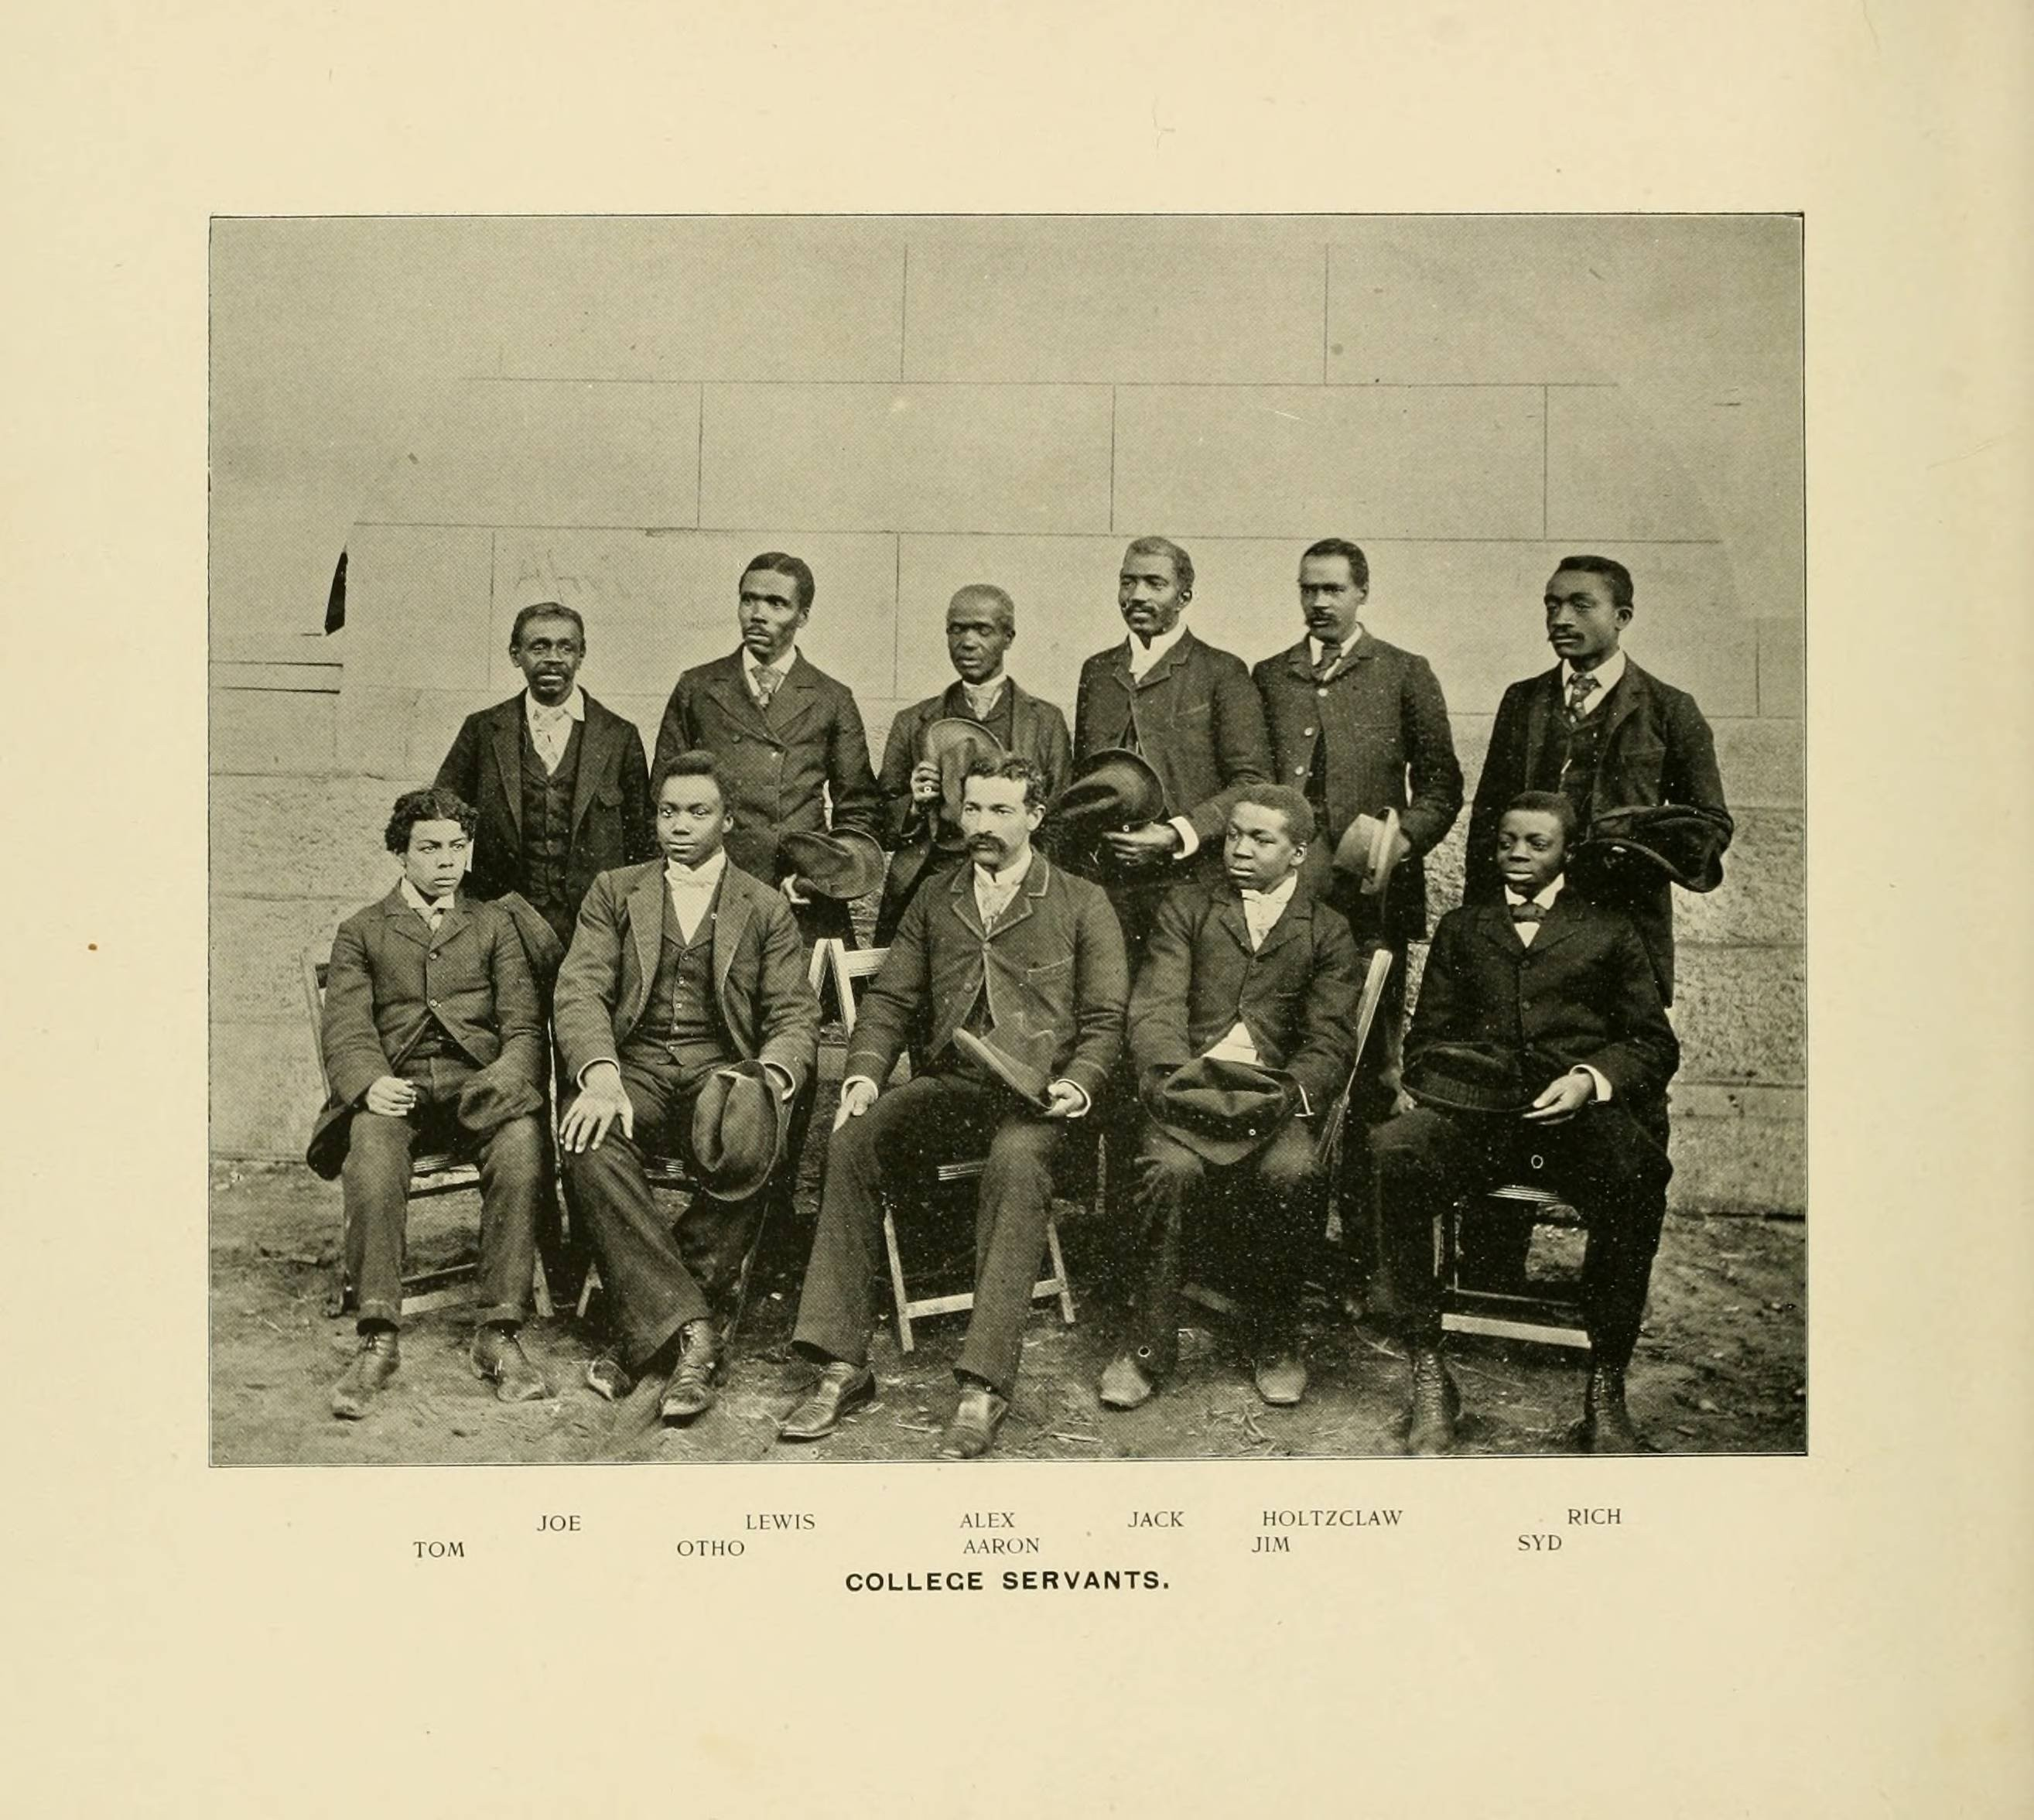 photograph of servants in the 1895 Quips and Cranks